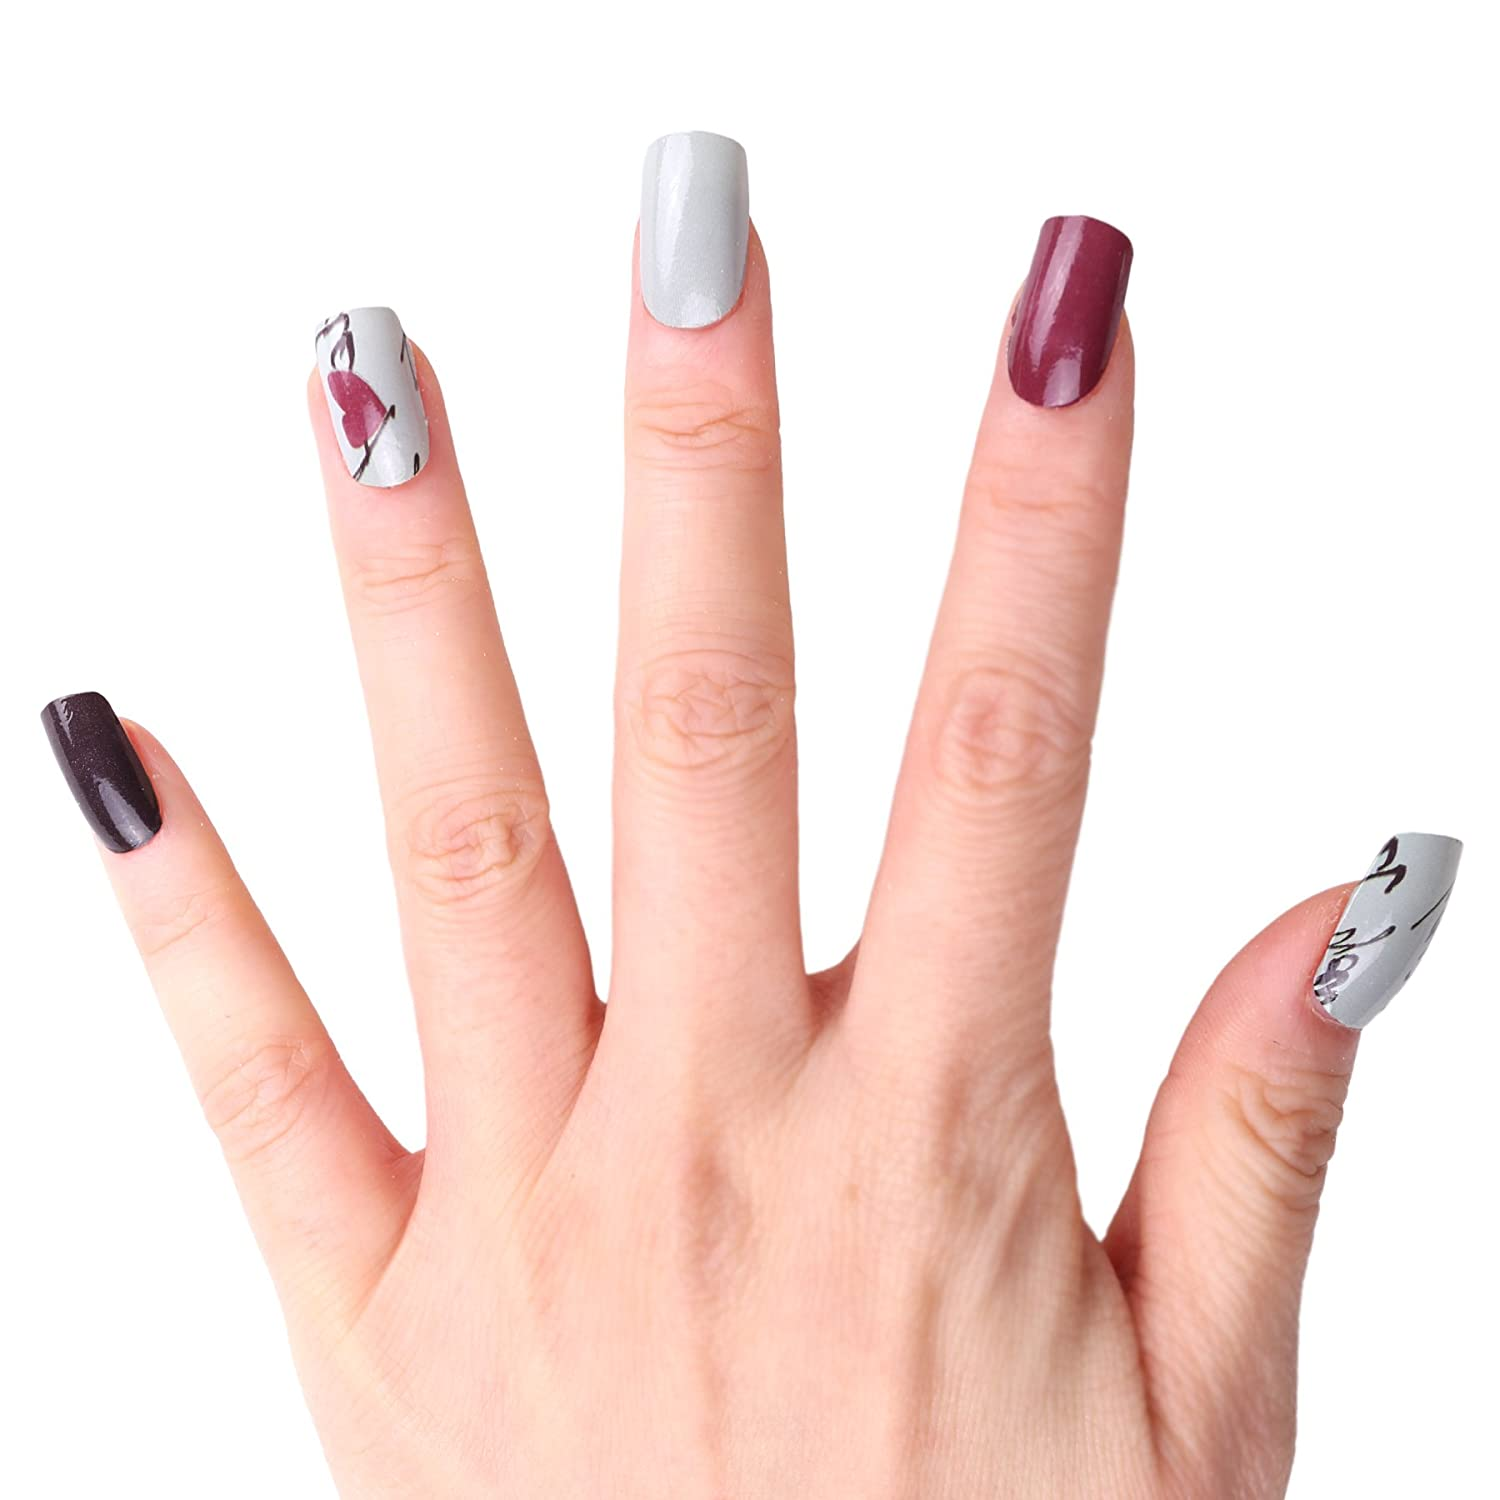 HIGHS EXTRE ADHESION 20pcs Nail Art Transfer Decals Sticker Design ...